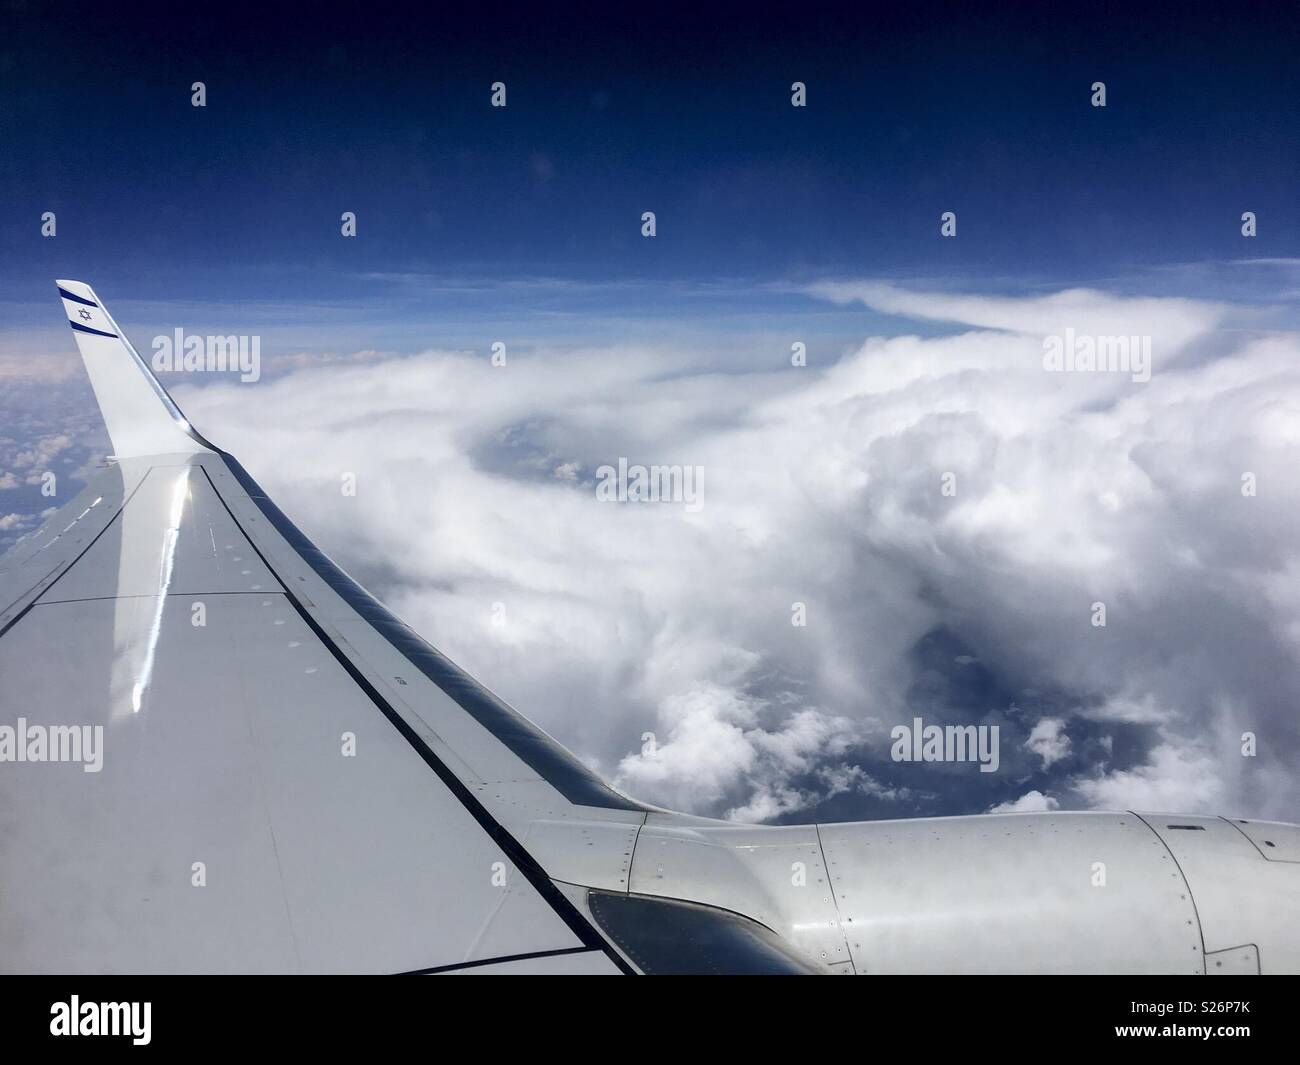 View from El Al aeroplane window of clouds in sky - Stock Image